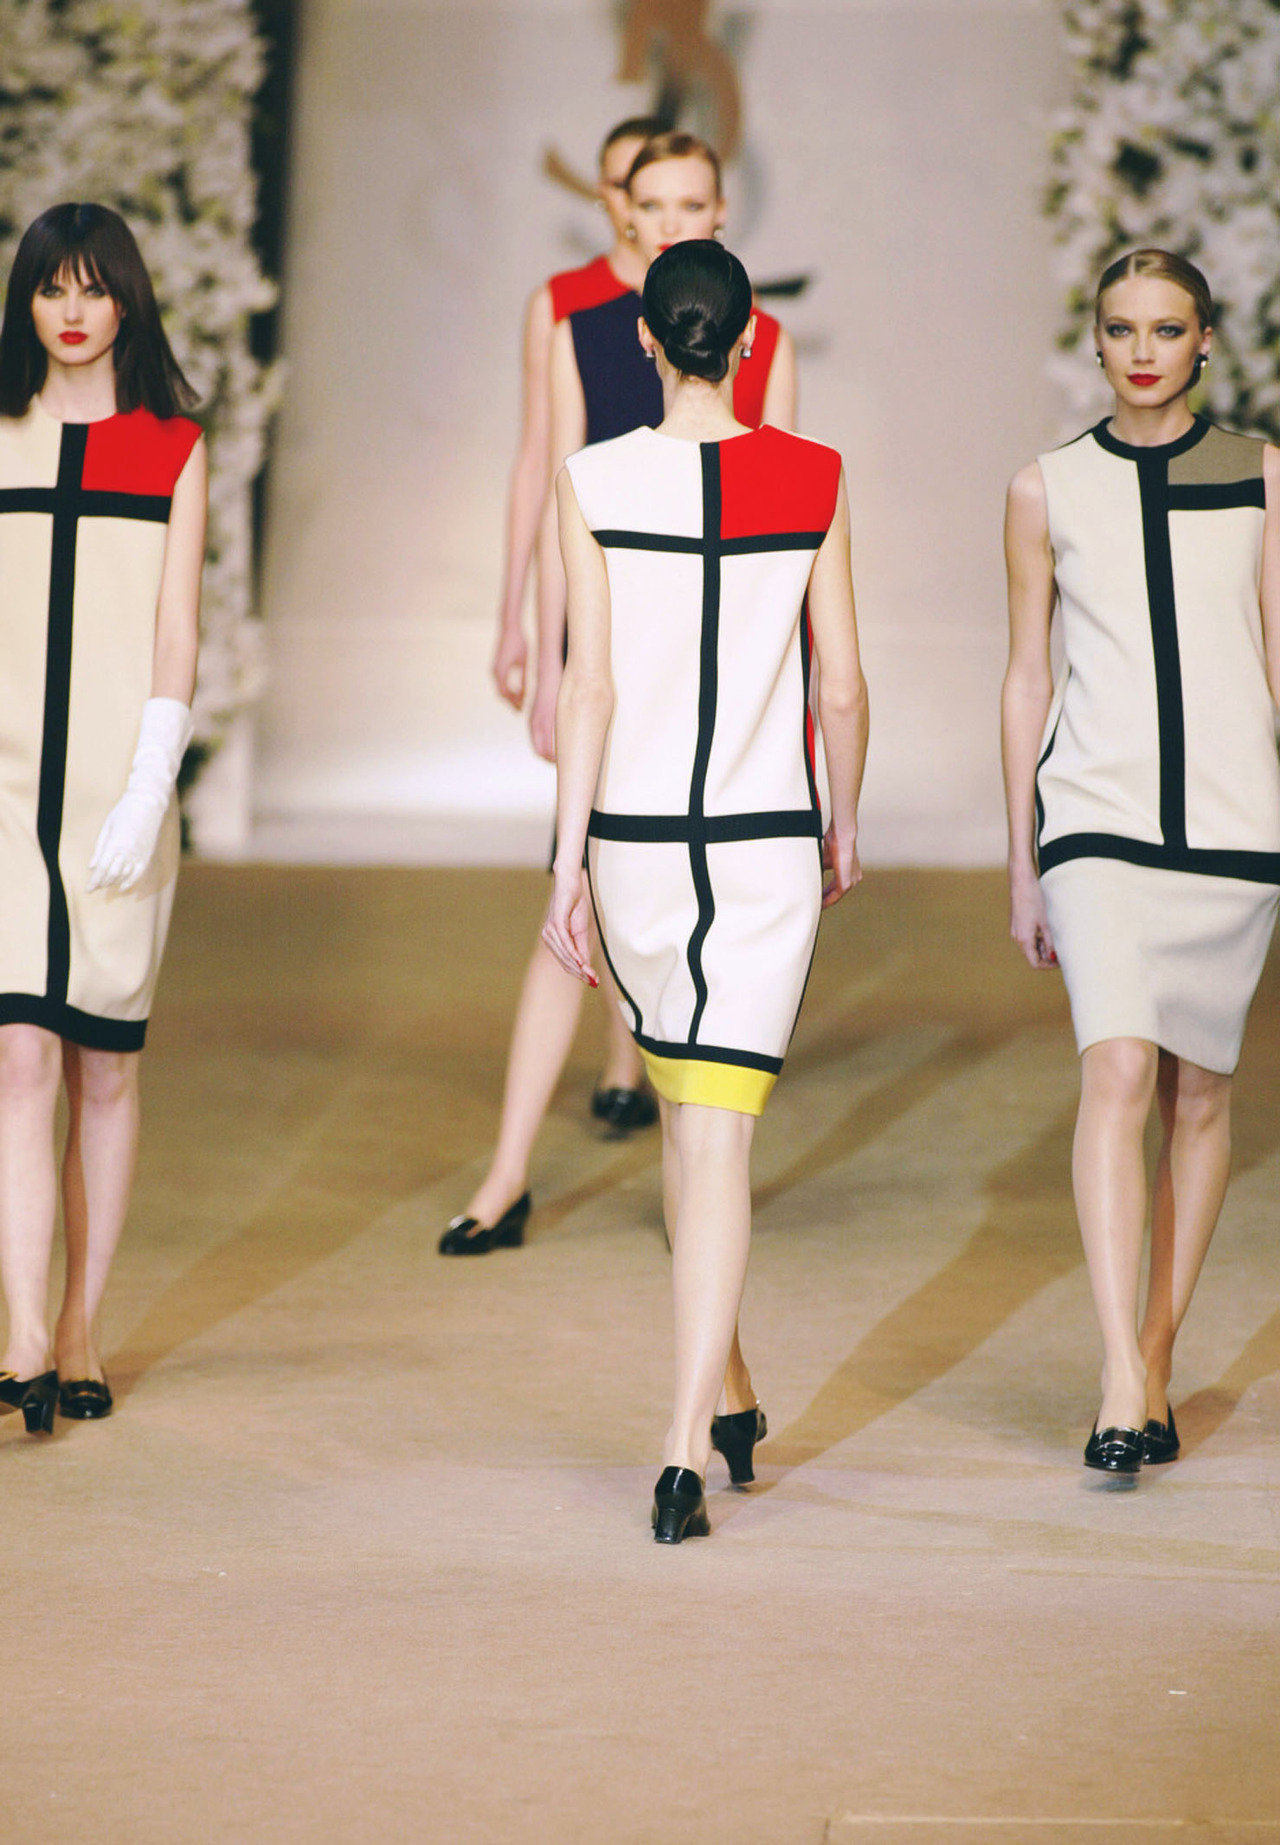 yves st. laurent's mondrian dress from 1966, featured in his last show for the label in the spring of 2002